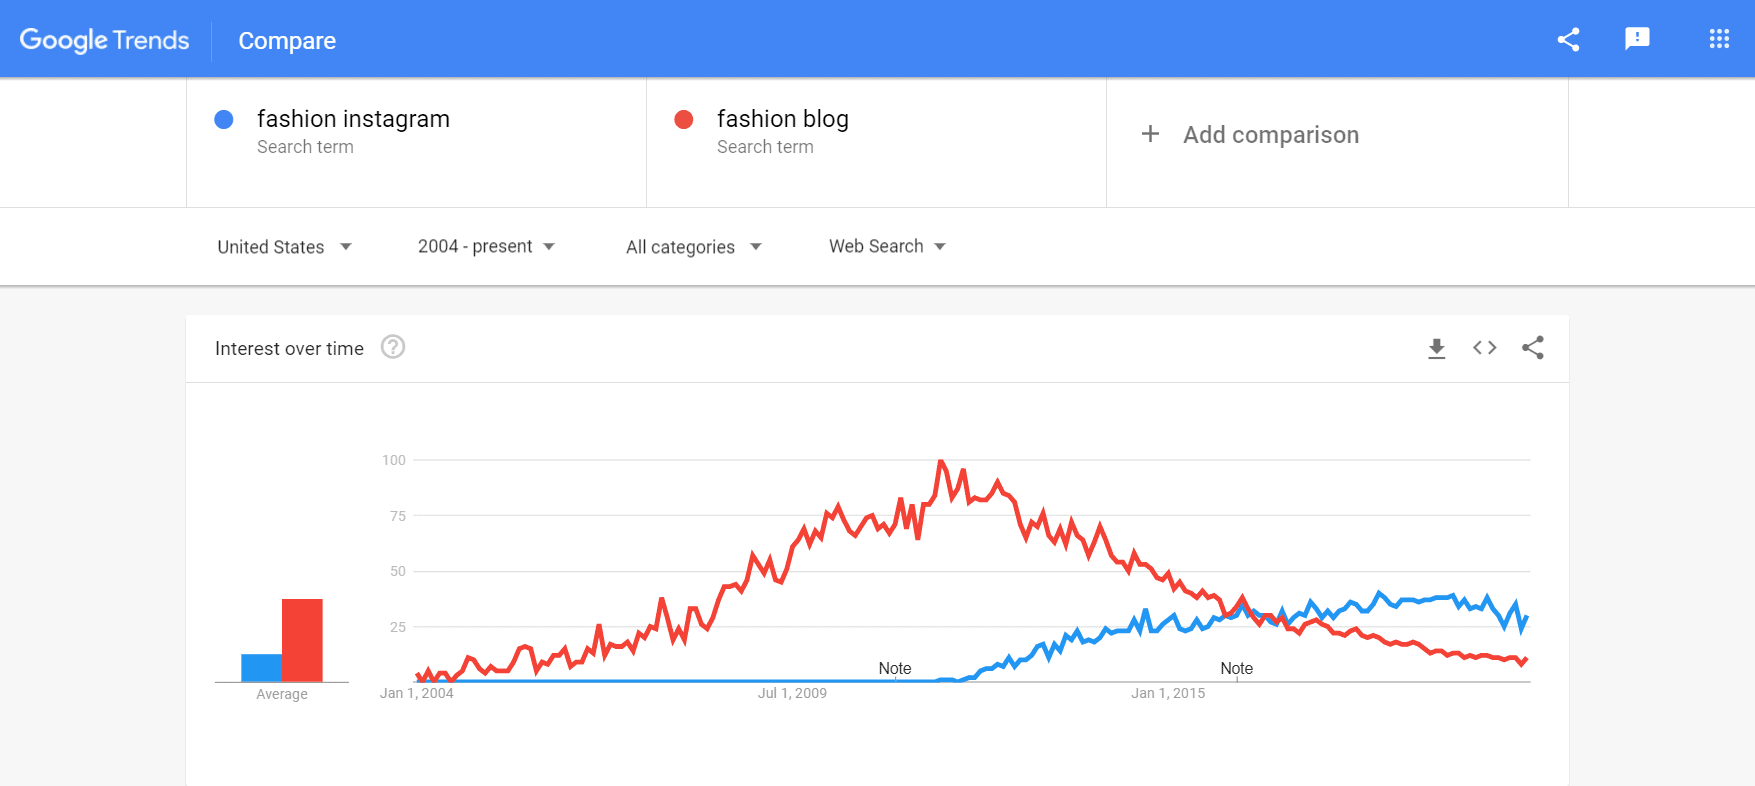 google trends of fashion blog vs. fashion instagram, where fashion blogging declines as fashion instagramming rises